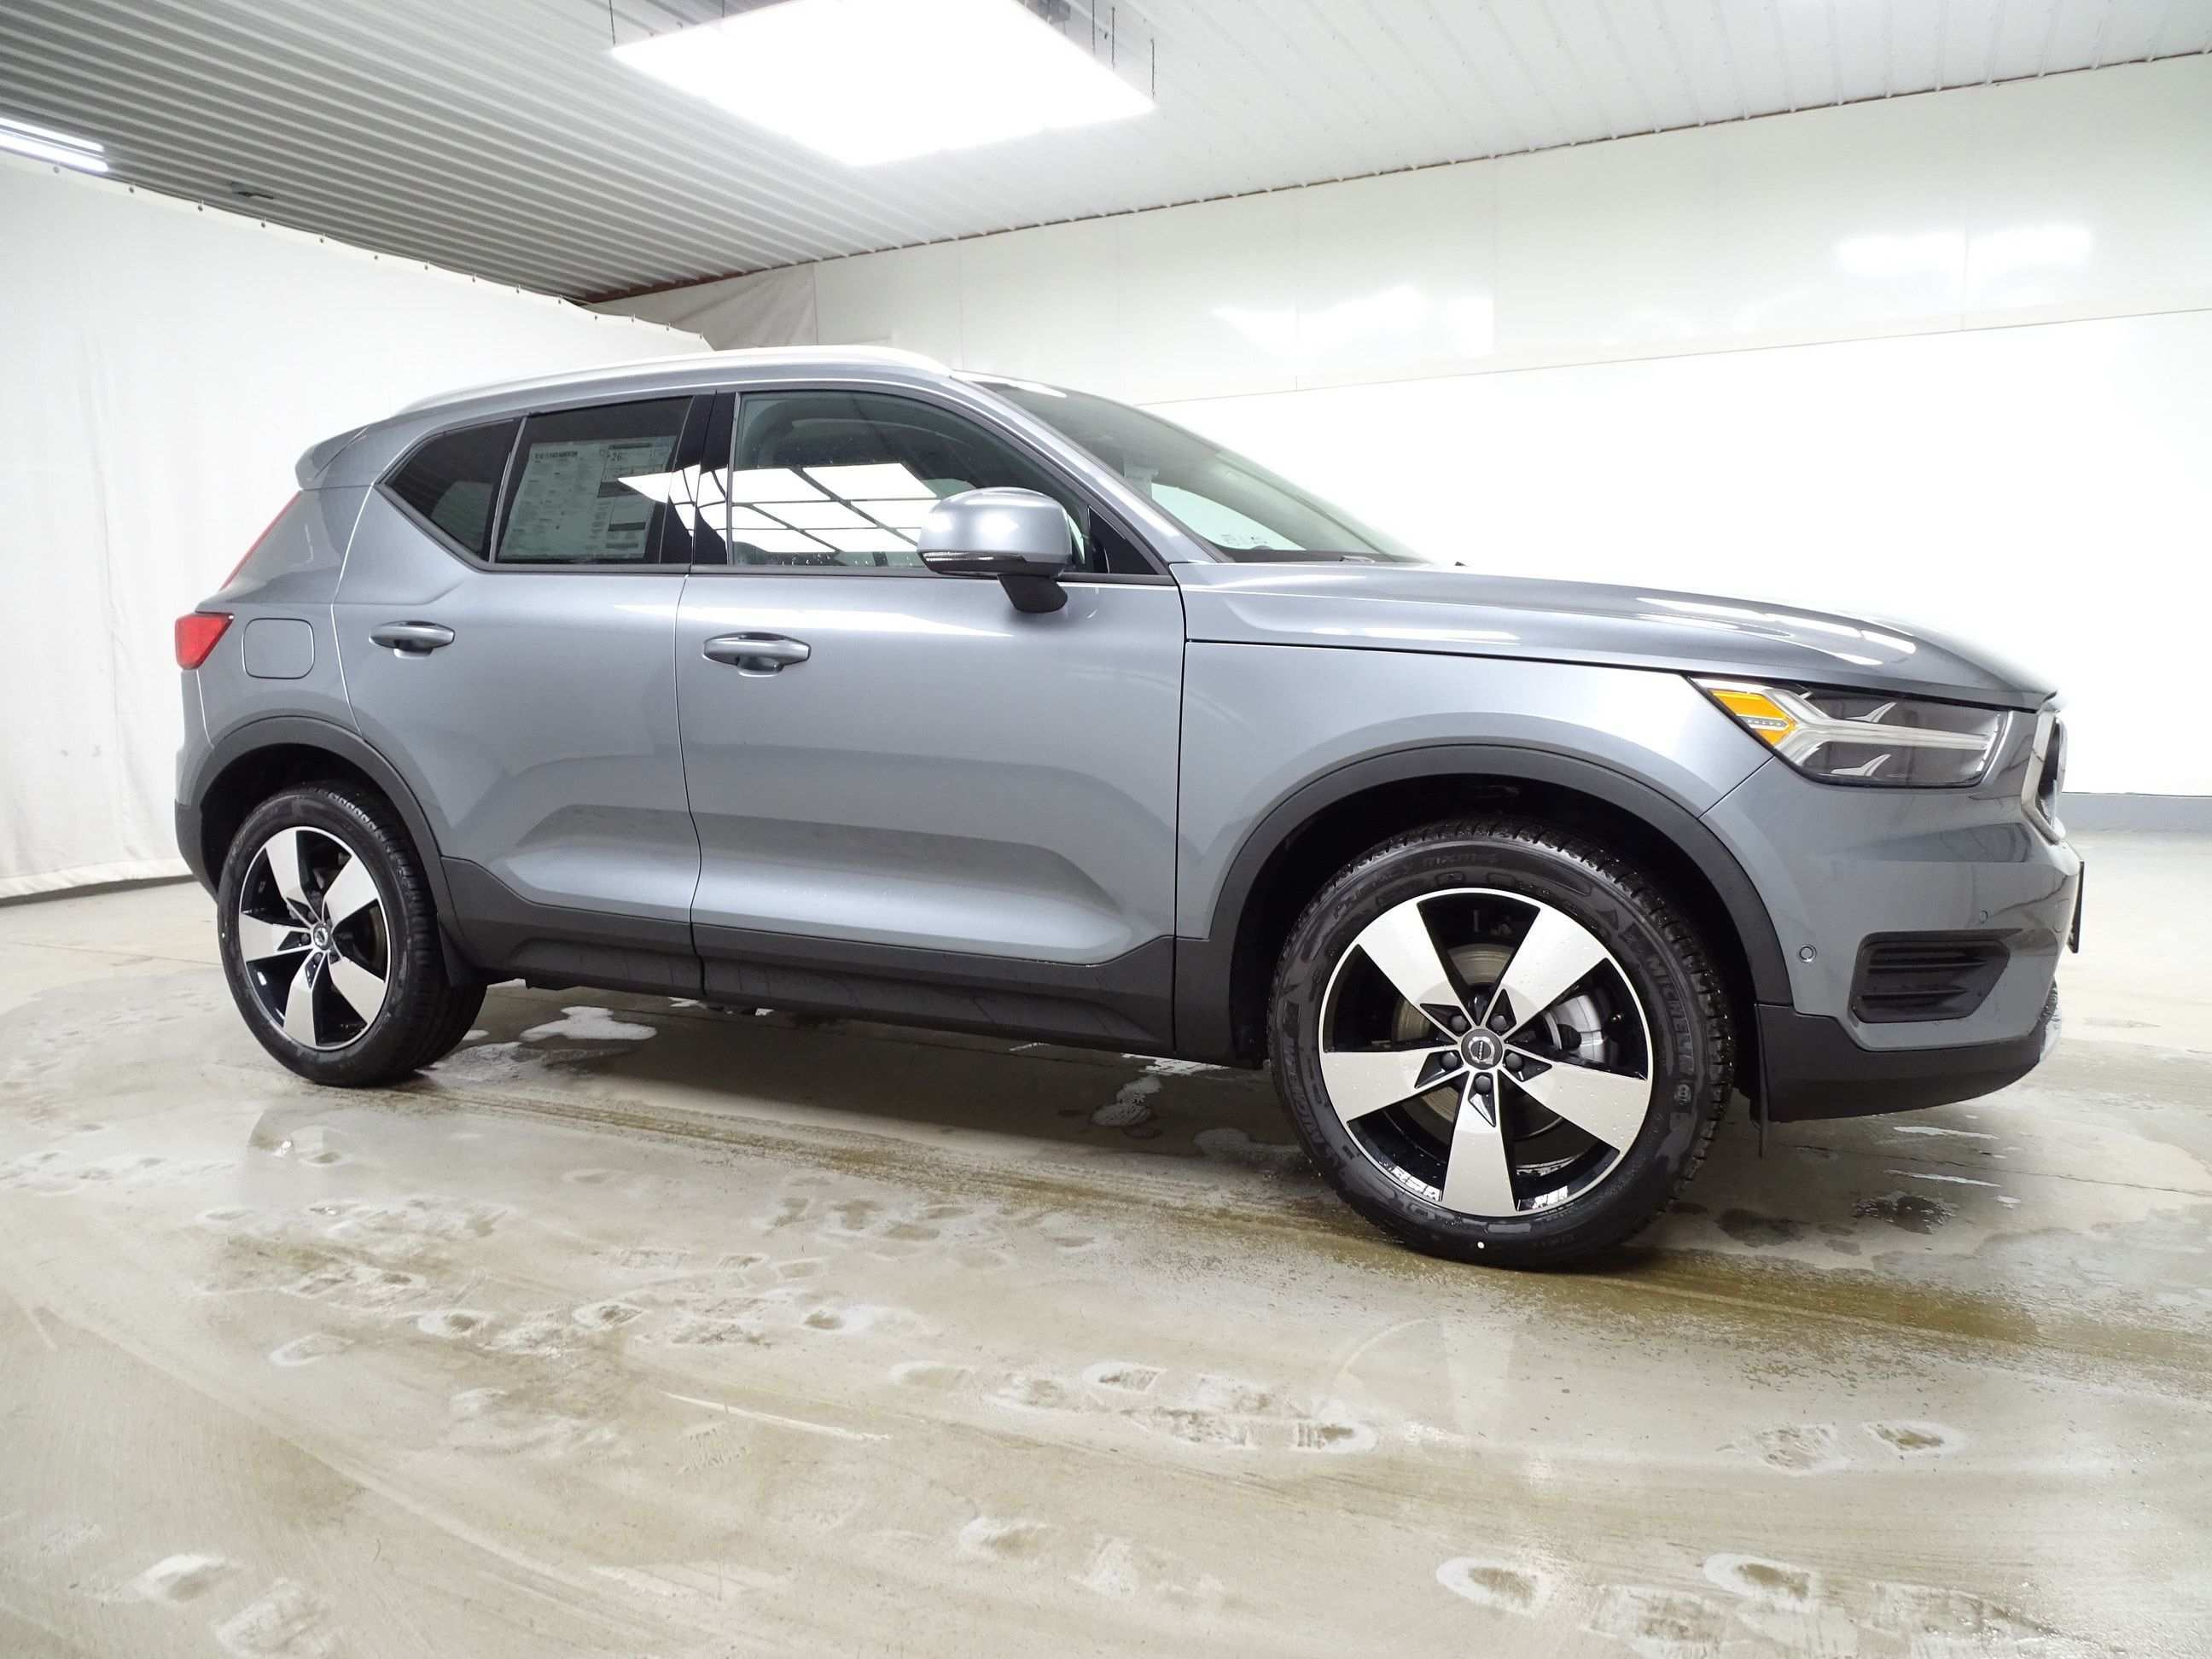 46 Great New 2019 Volvo Xc40 T5 Momentum Lease Exterior And Interior Review Spy Shoot by New 2019 Volvo Xc40 T5 Momentum Lease Exterior And Interior Review